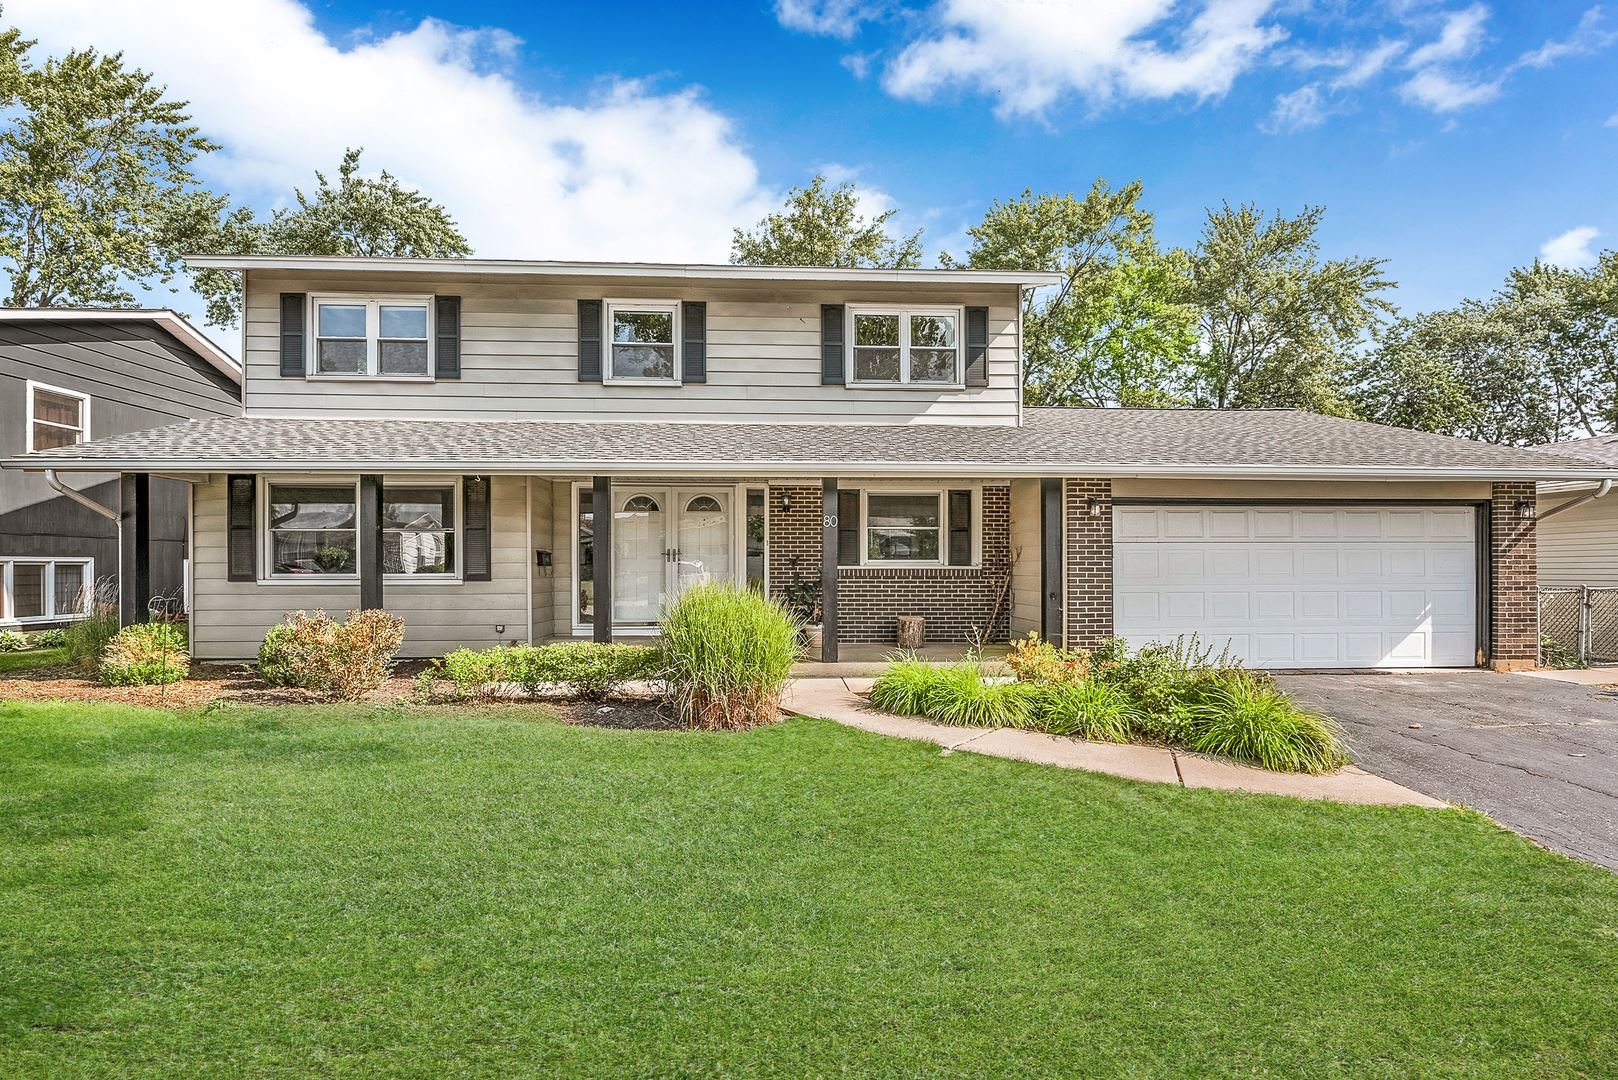 80 Walpole Road, Elk Grove Village, IL 60007 - #: 10762680